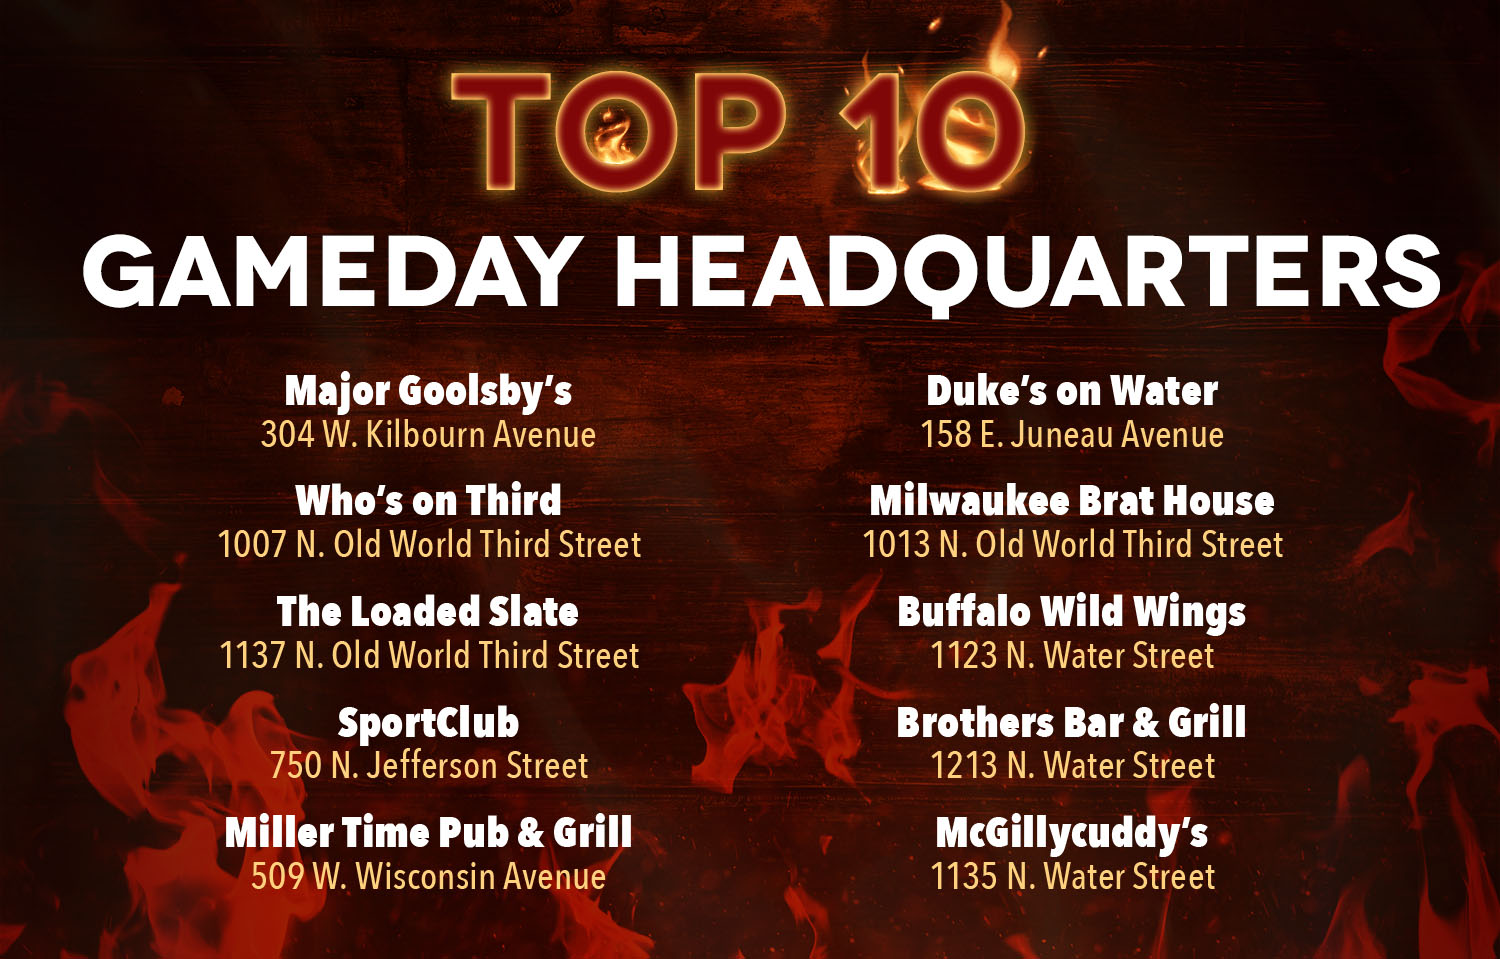 Milwaukee Downtown Top 10 Gameday Headquarters